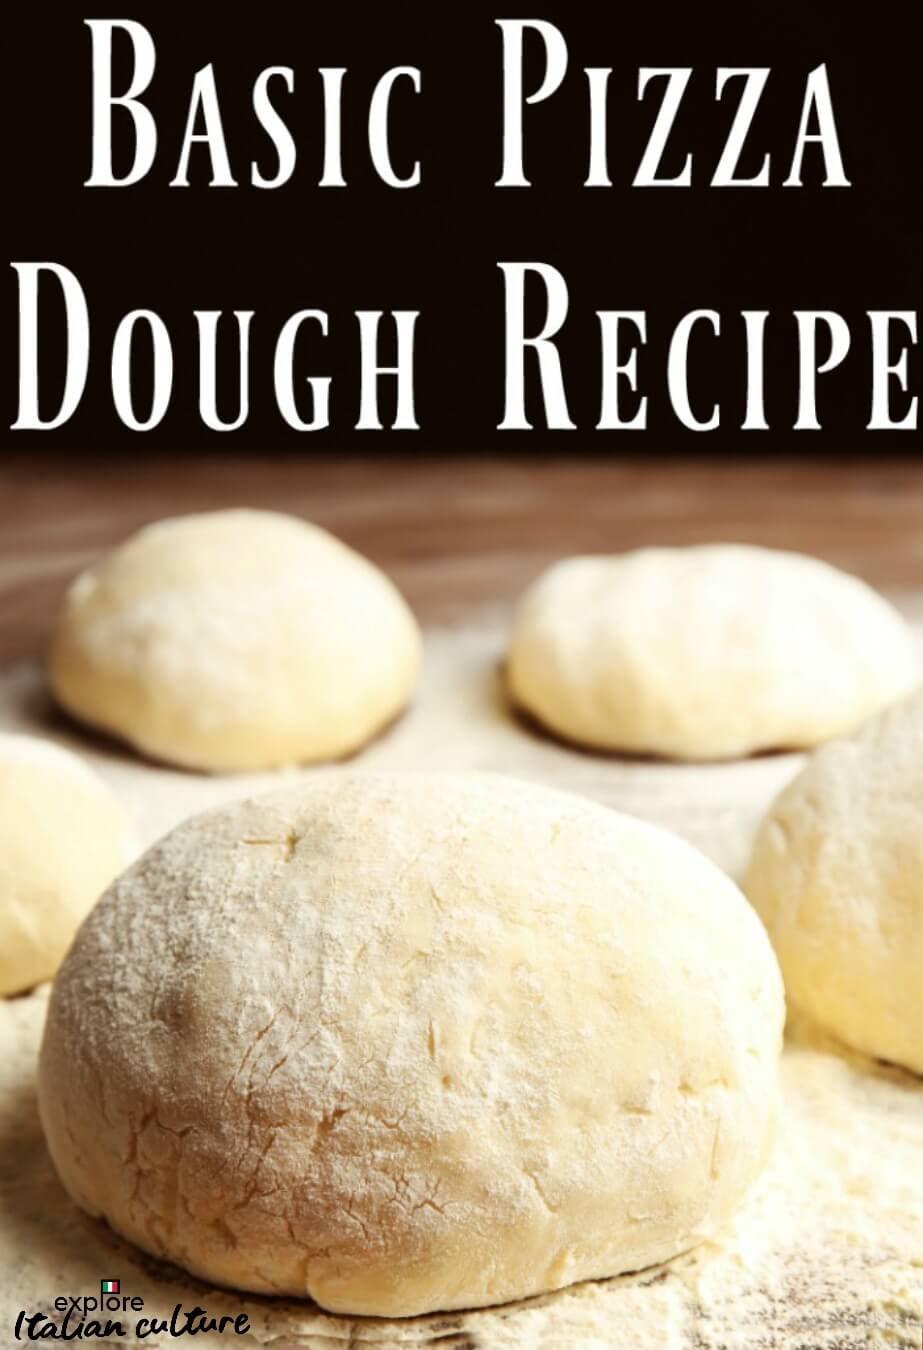 Basic pizza dough recipe - link.